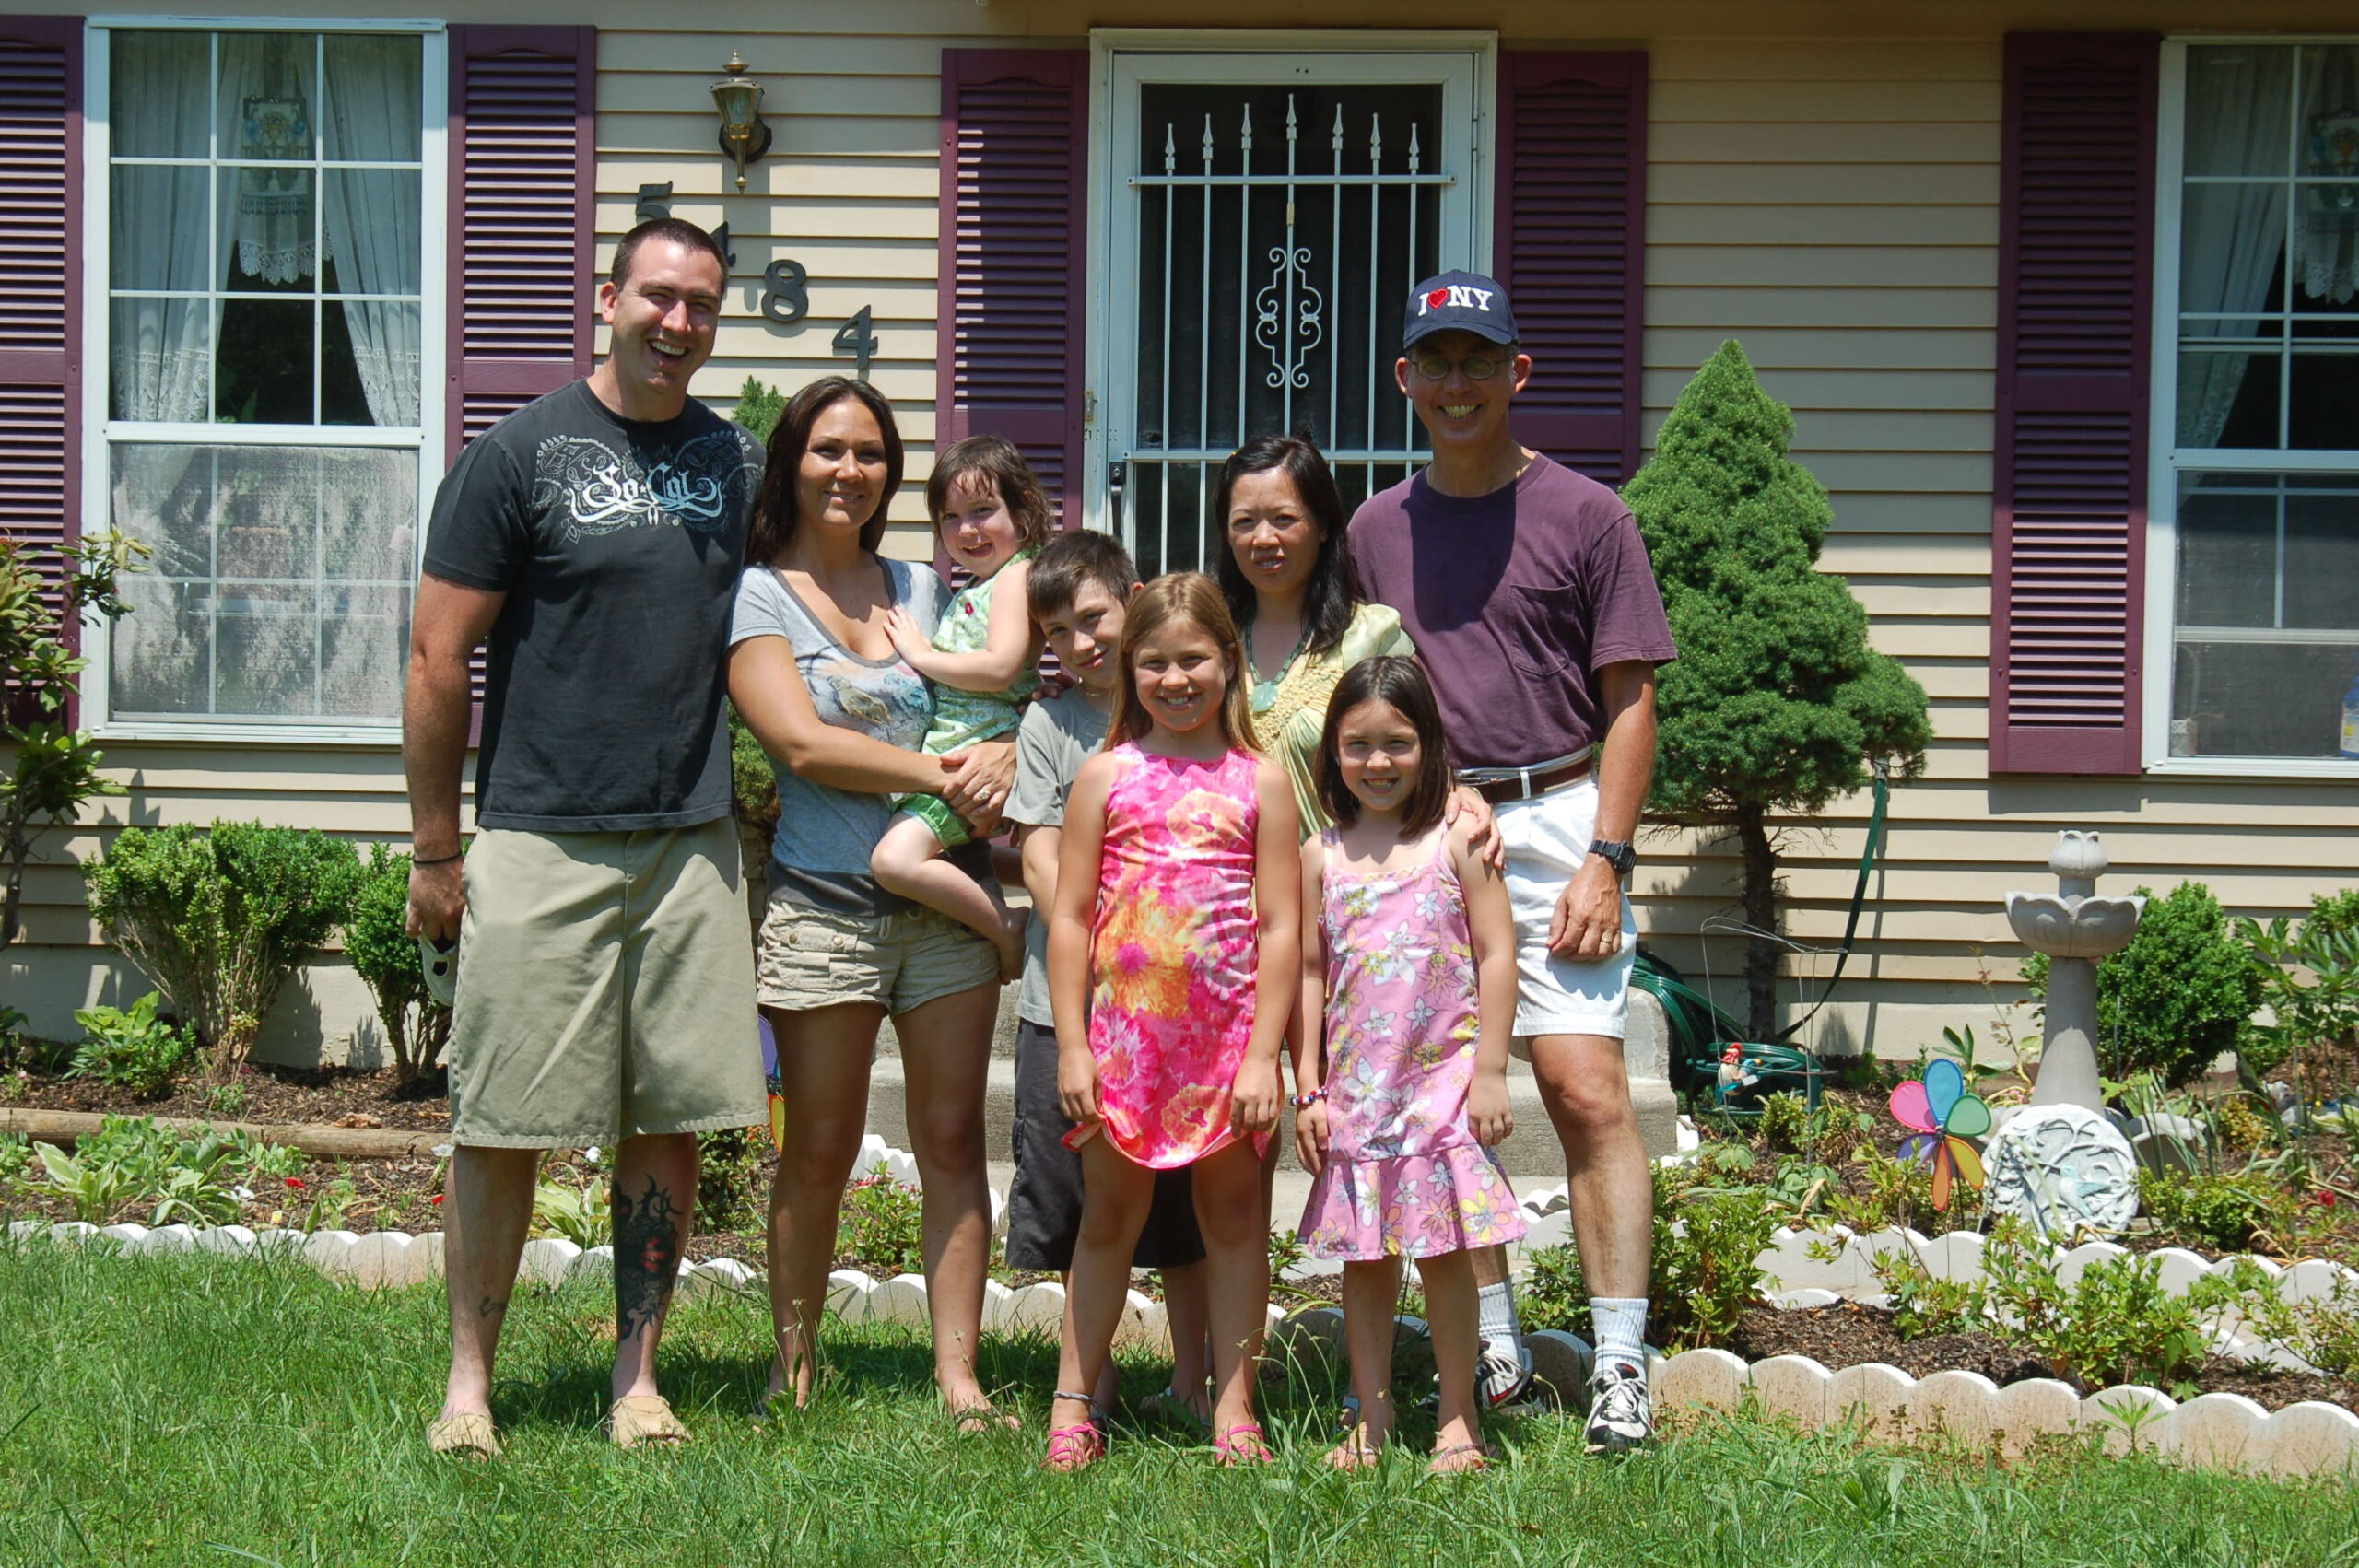 Terry and Summer Torrence and Family, Woodbridge, Virginia